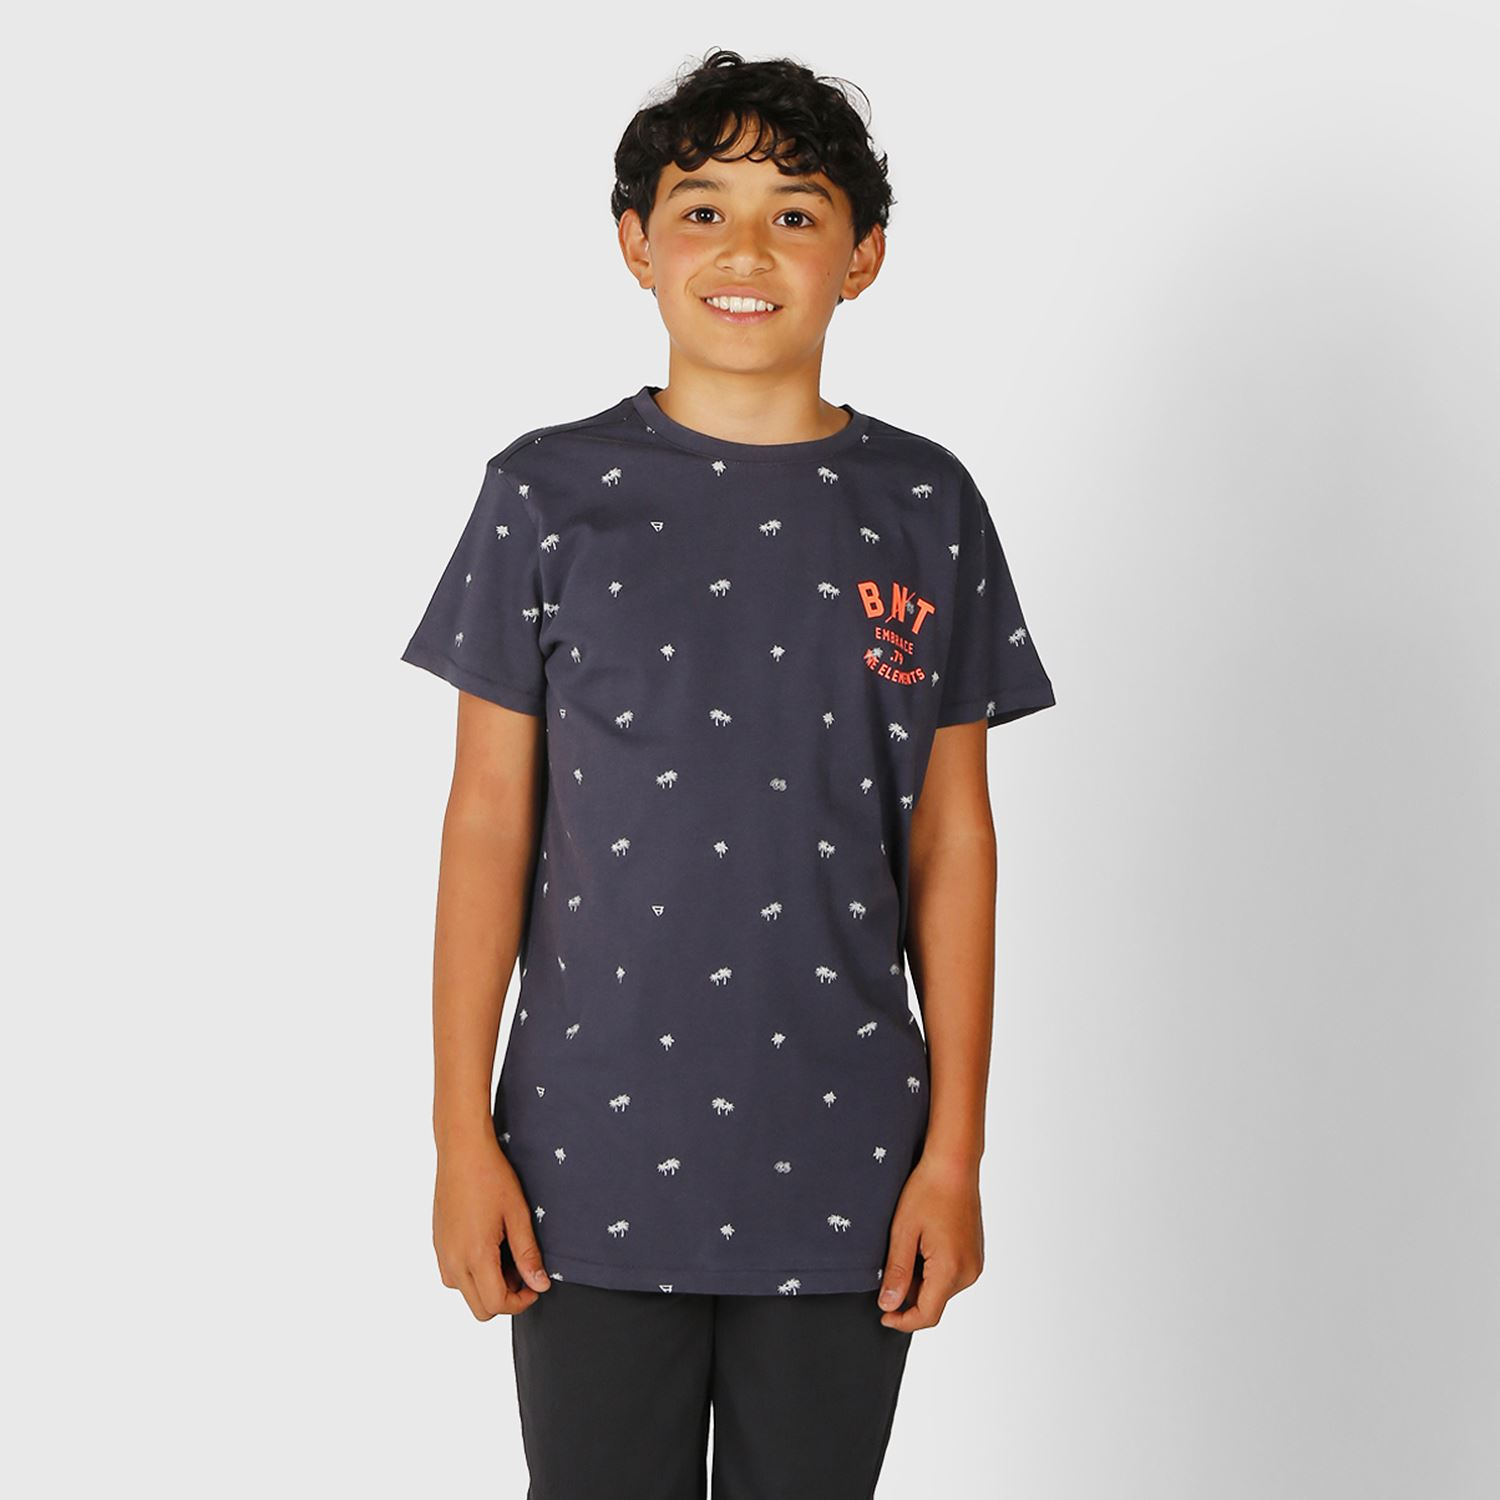 Burrow JR Boys T-shirt